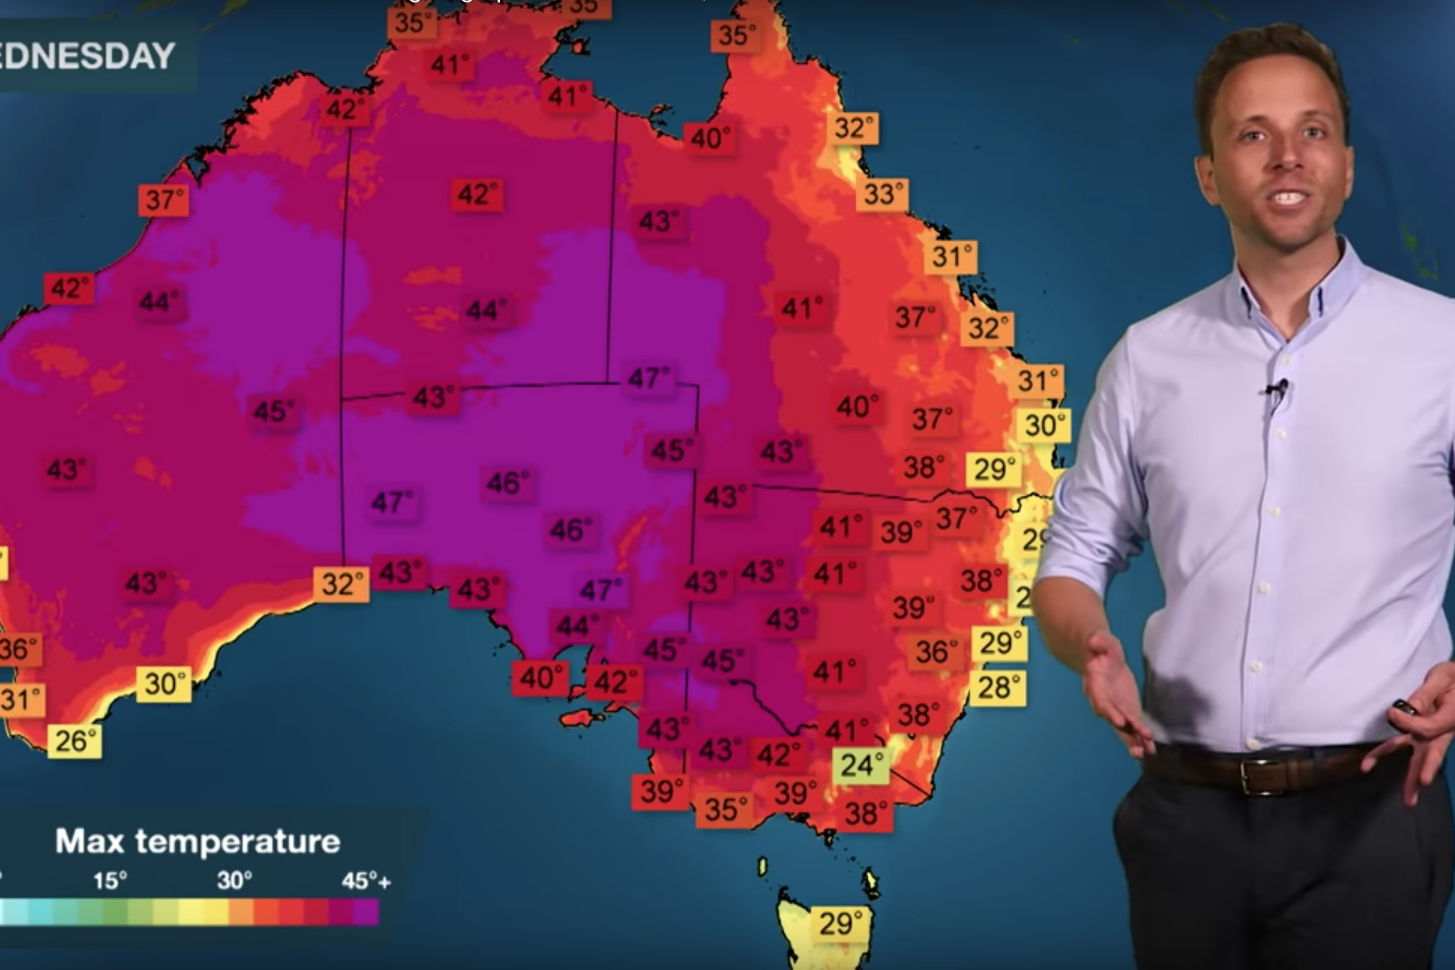 'Like a furnace': Australia set to see hottest day ever with 50C forecast as devastating bushfires rage